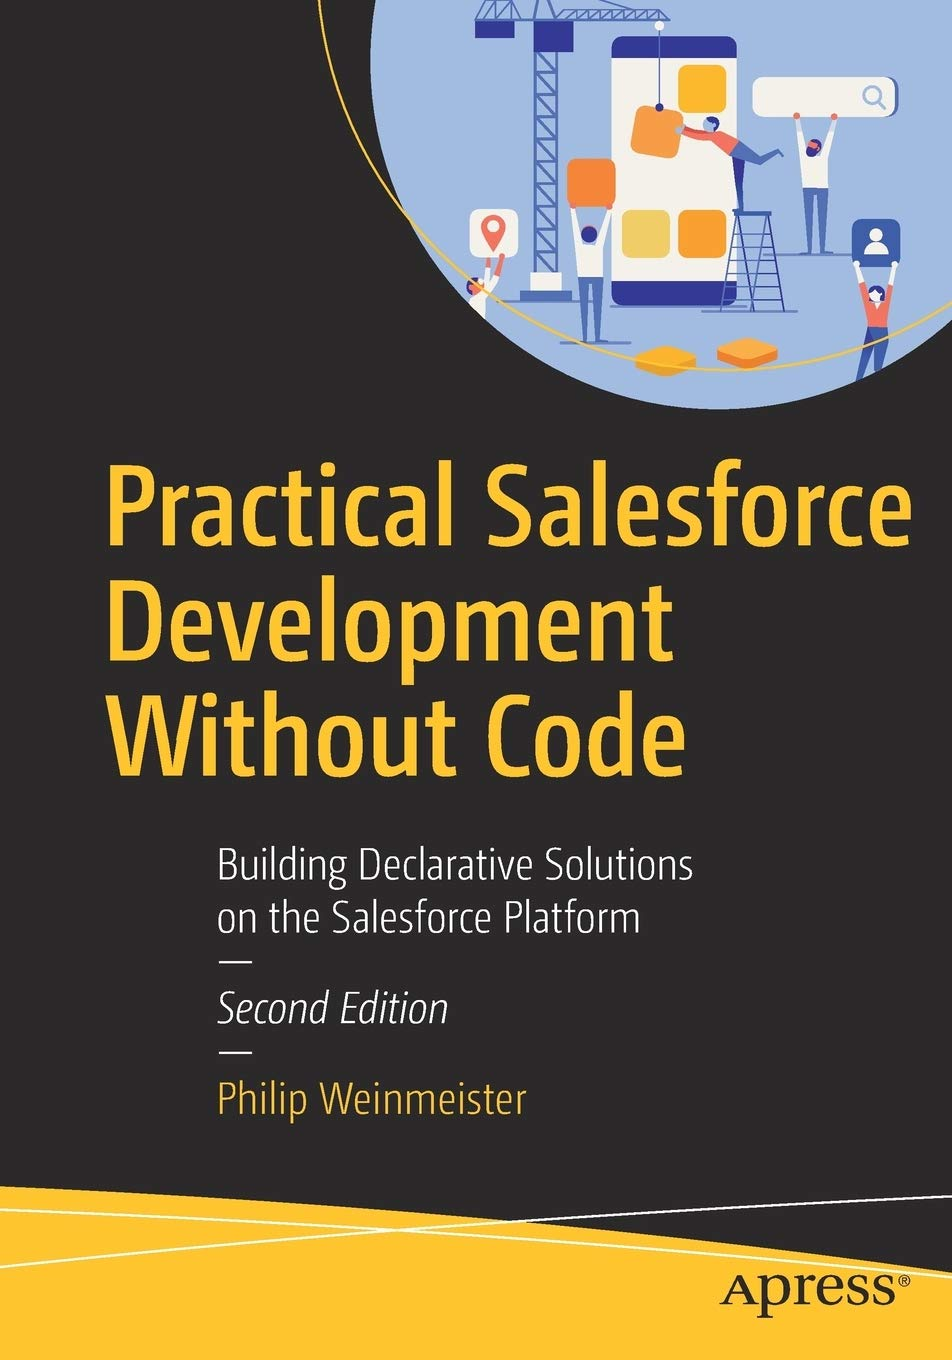 Download Practical Salesforce Development Without Code: Building Declarative Solutions On The Salesforce Platform 